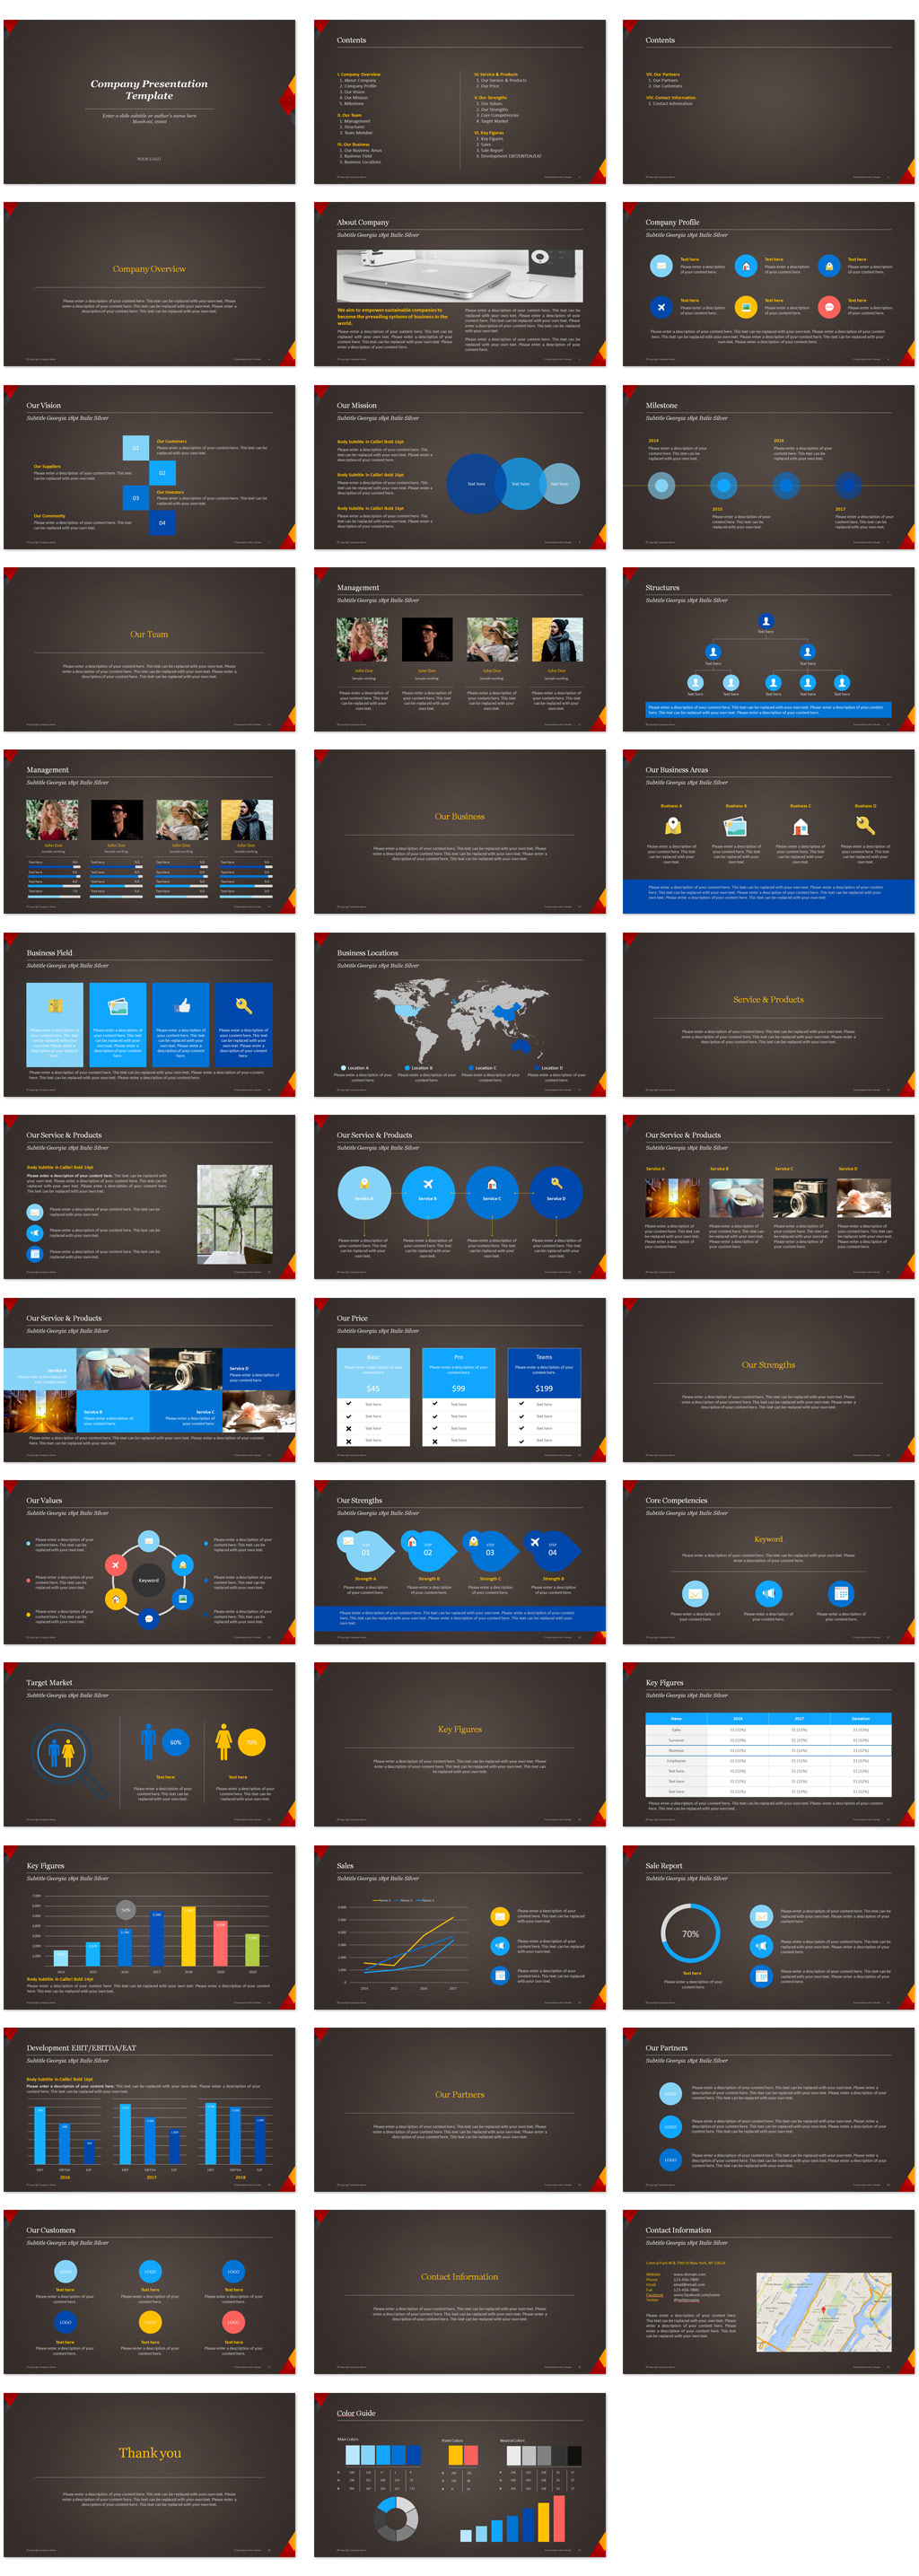 Company Introduction PowerPoint Templates